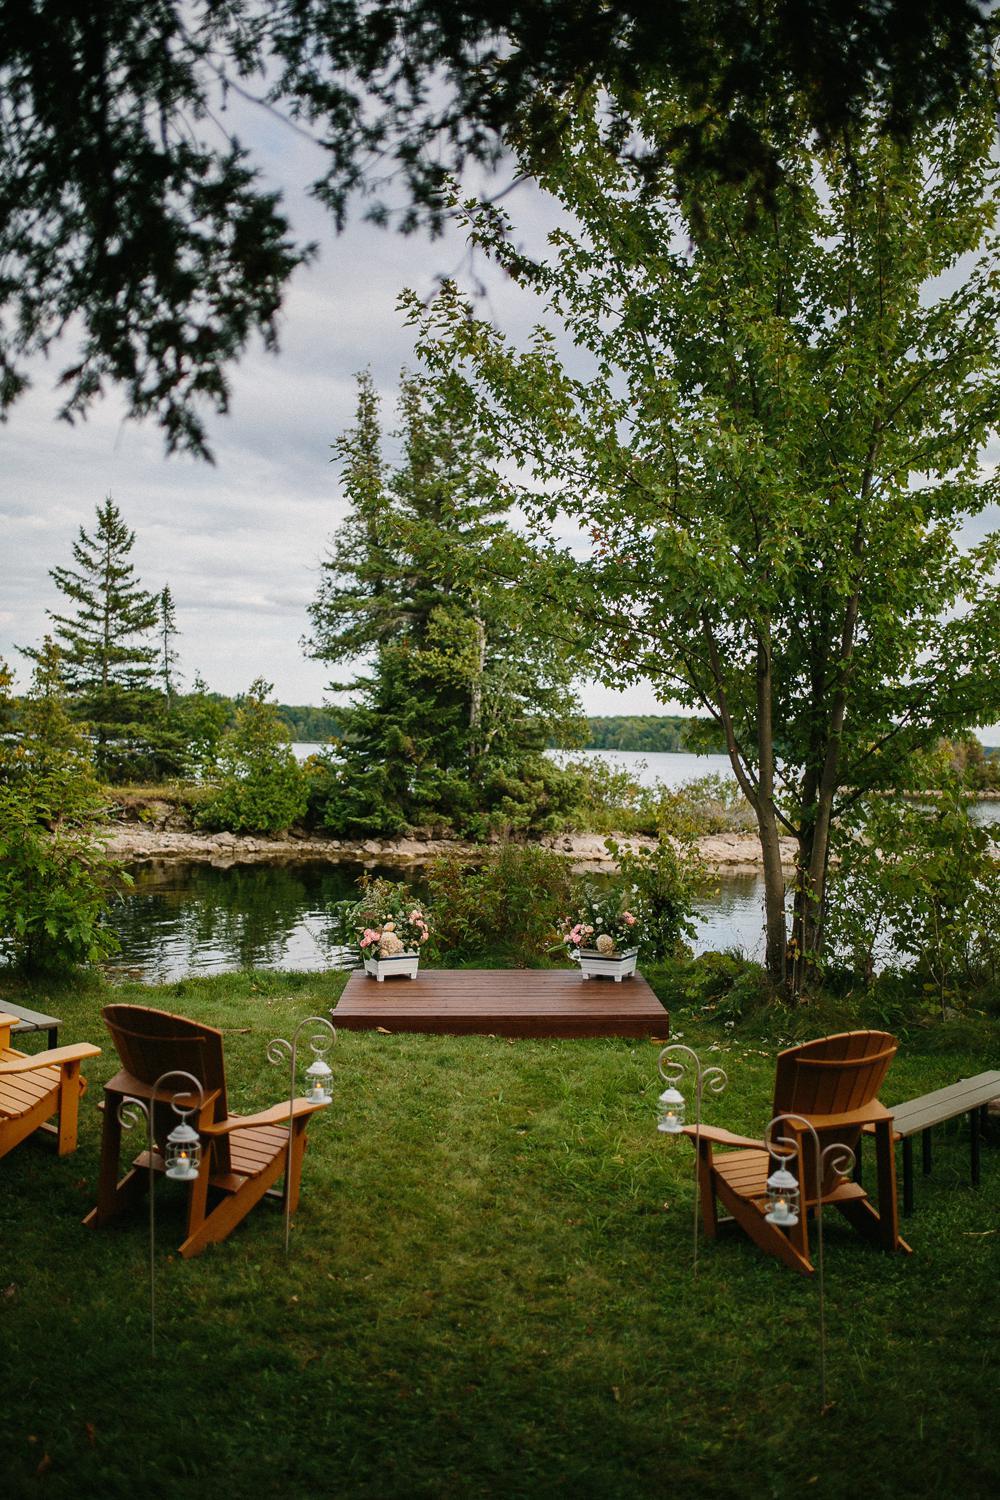 kerry ford photography - small intimate backyard rideau lake island wedding perth ontario-012.jpg